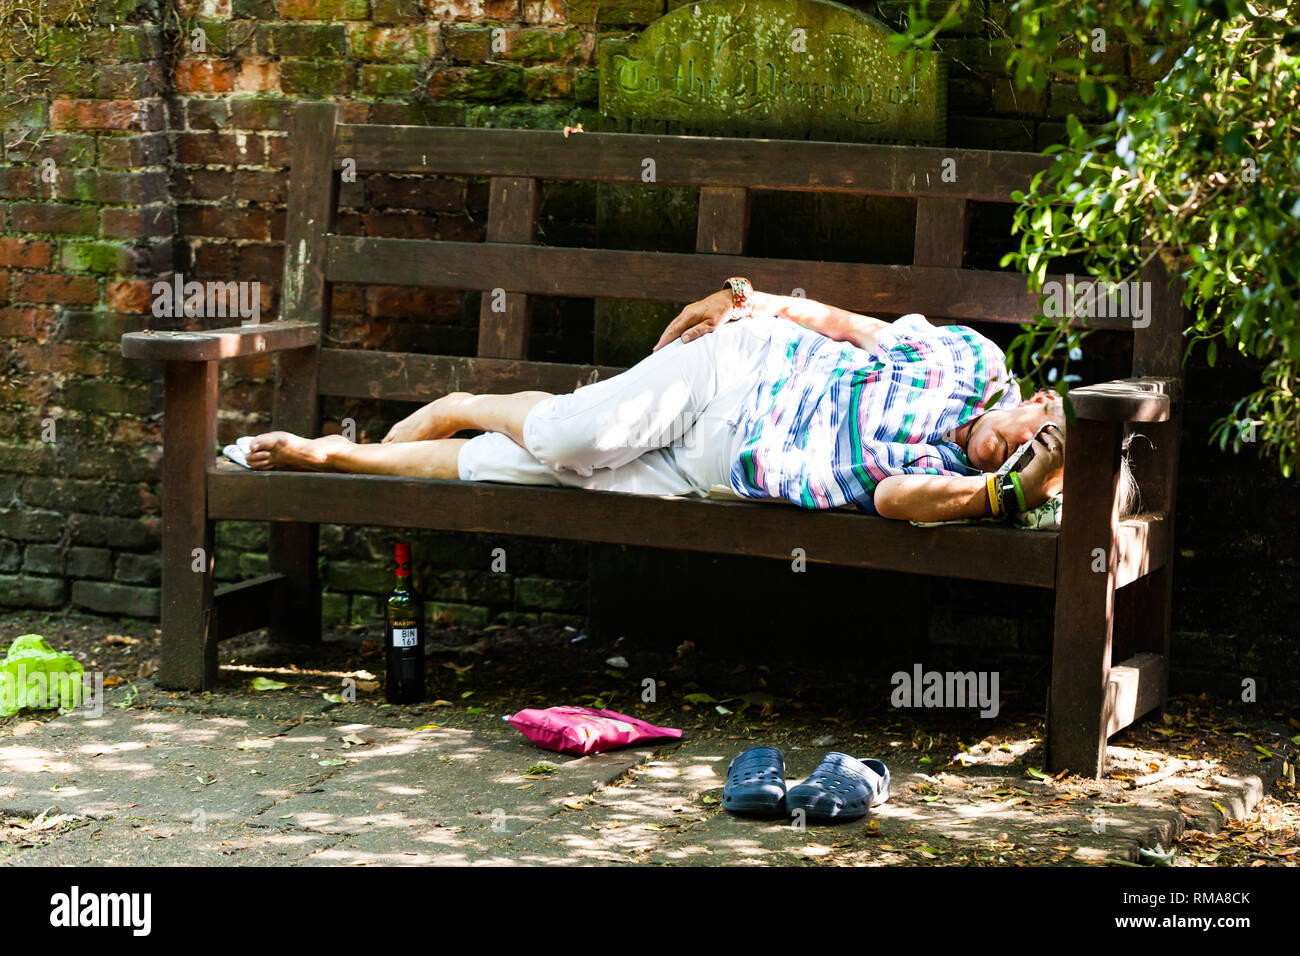 BIRMINGHAM, UK - March 2018 Elderly Drunk Woman Sleeping on Wooden Bench on Sunny Day. Bottle of Spirited Drink under the Seat. Pouch and Shoes on Dir Stock Photo